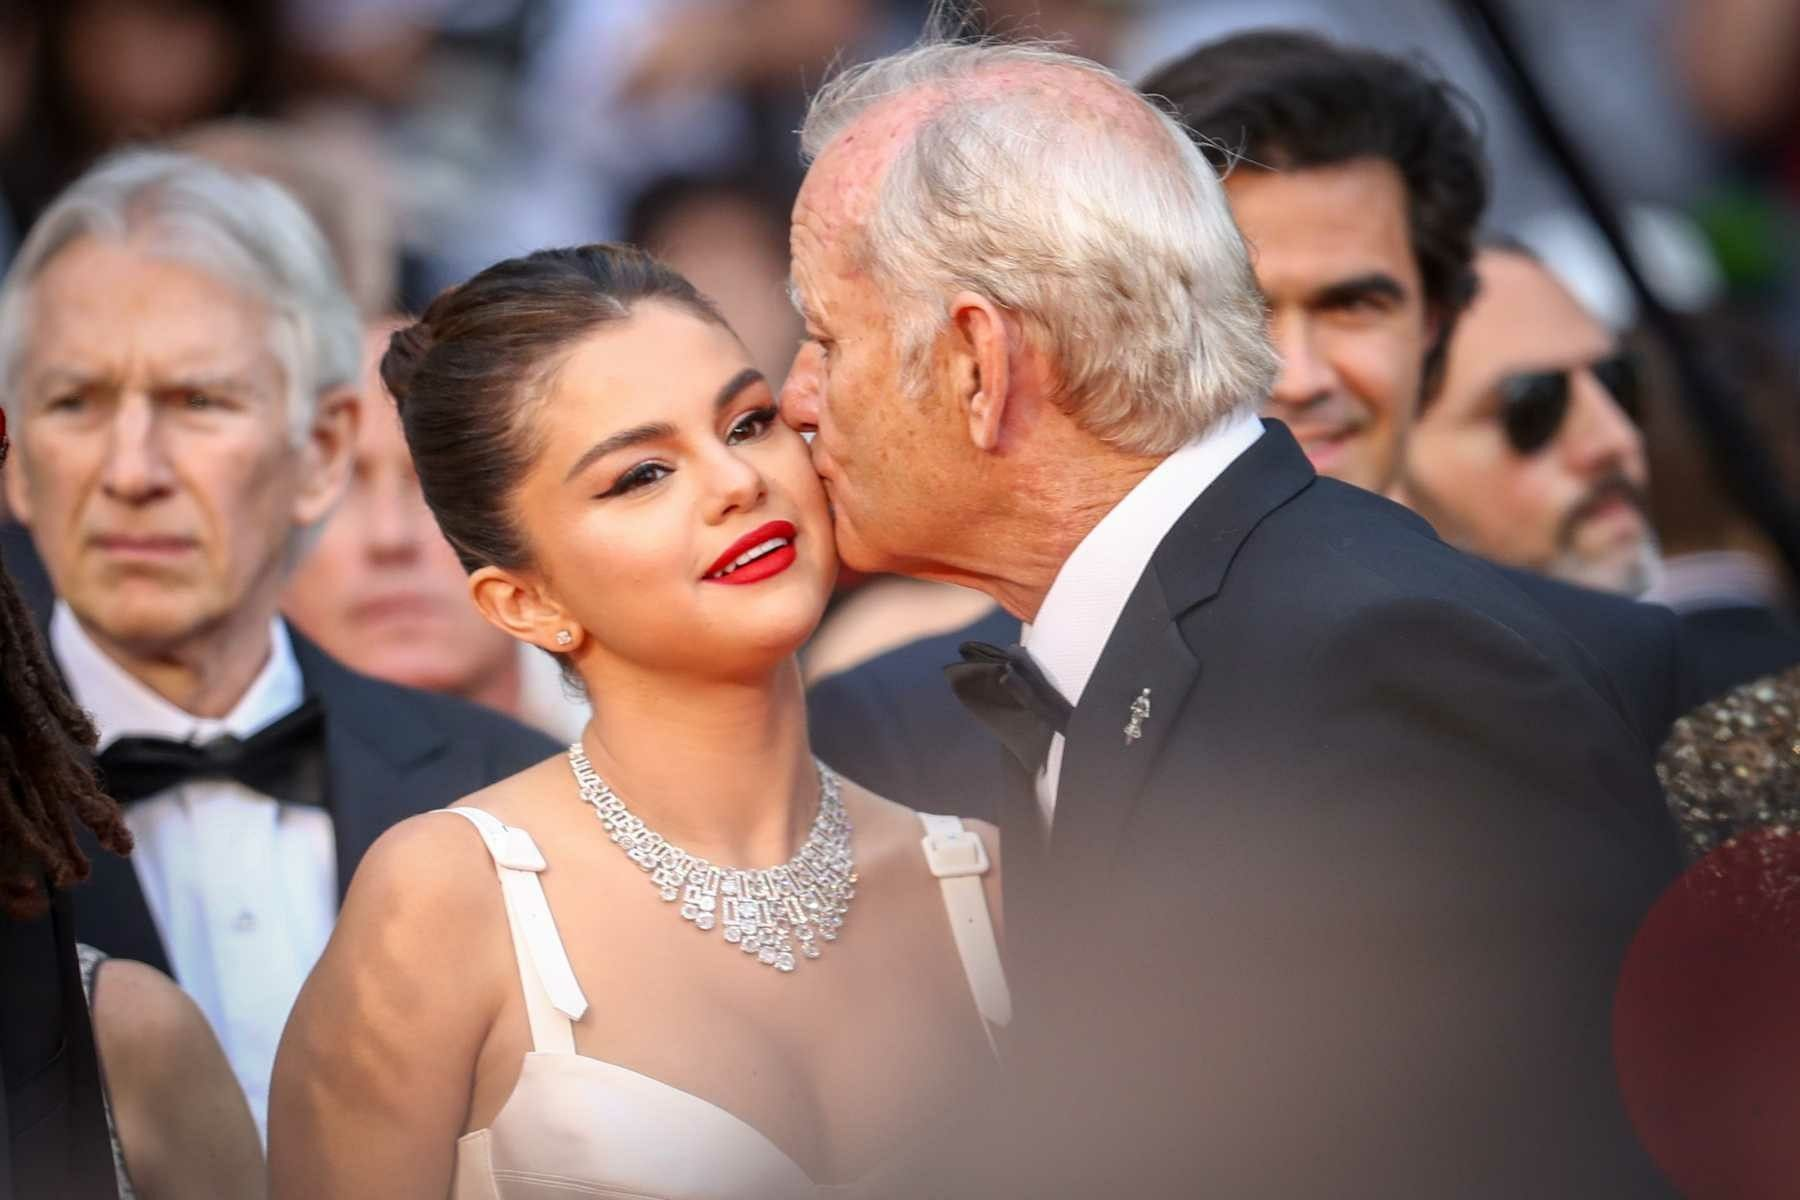 Pin by ℍ𝕚𝕞𝕒𝕝𝕖𝕖 💙 on ⭐SELENA GOMEZ⭐ Cannes film festival